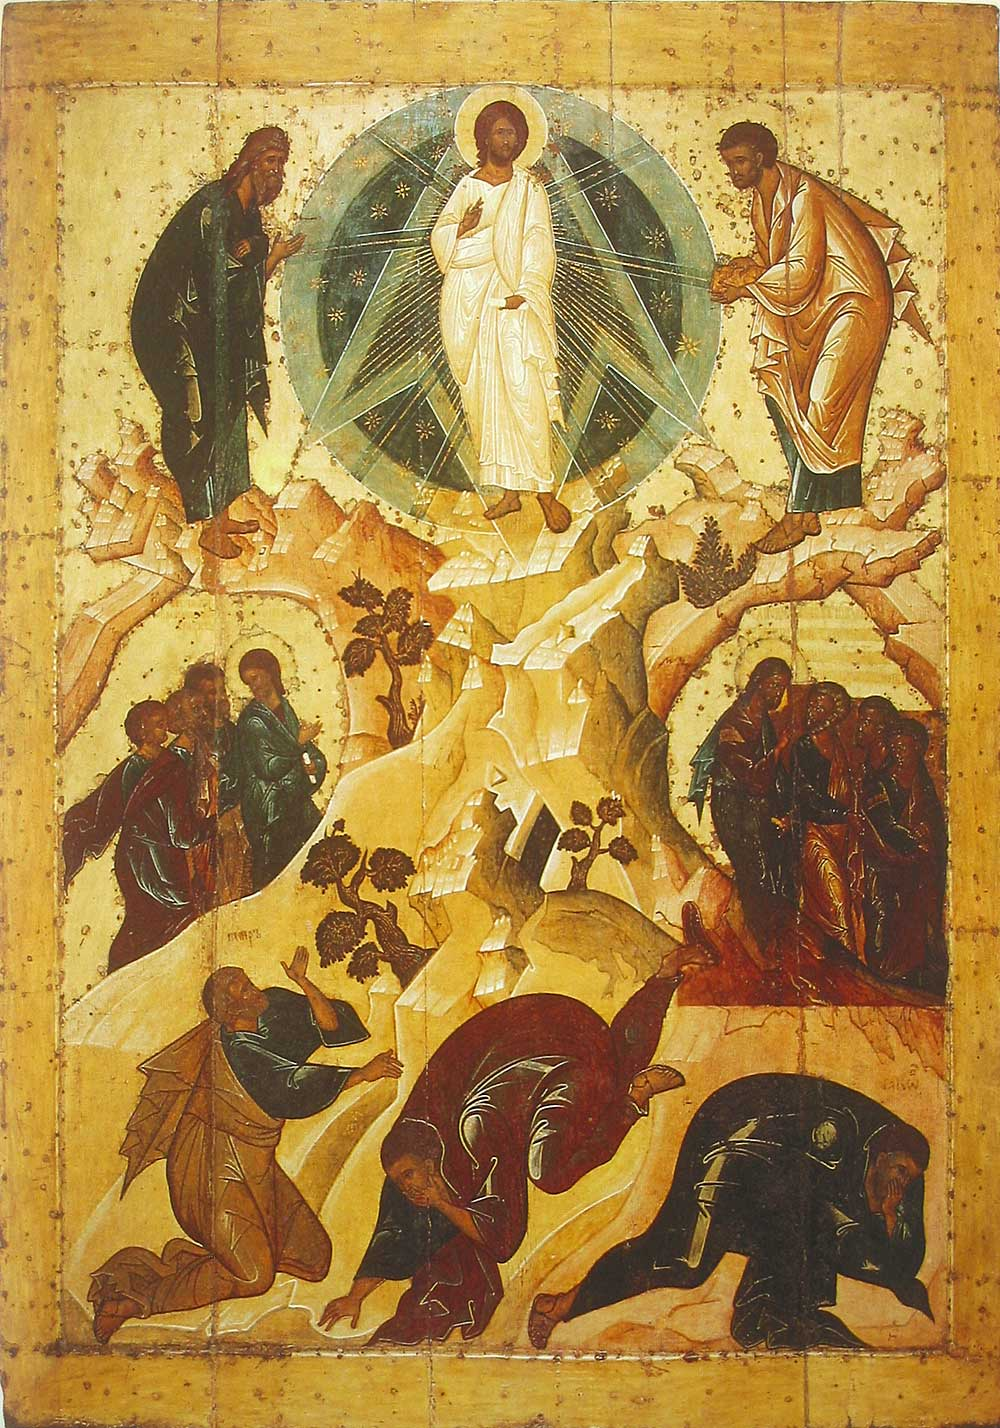 Patrick Comerford: The Transfiguration: finding meaning in ...